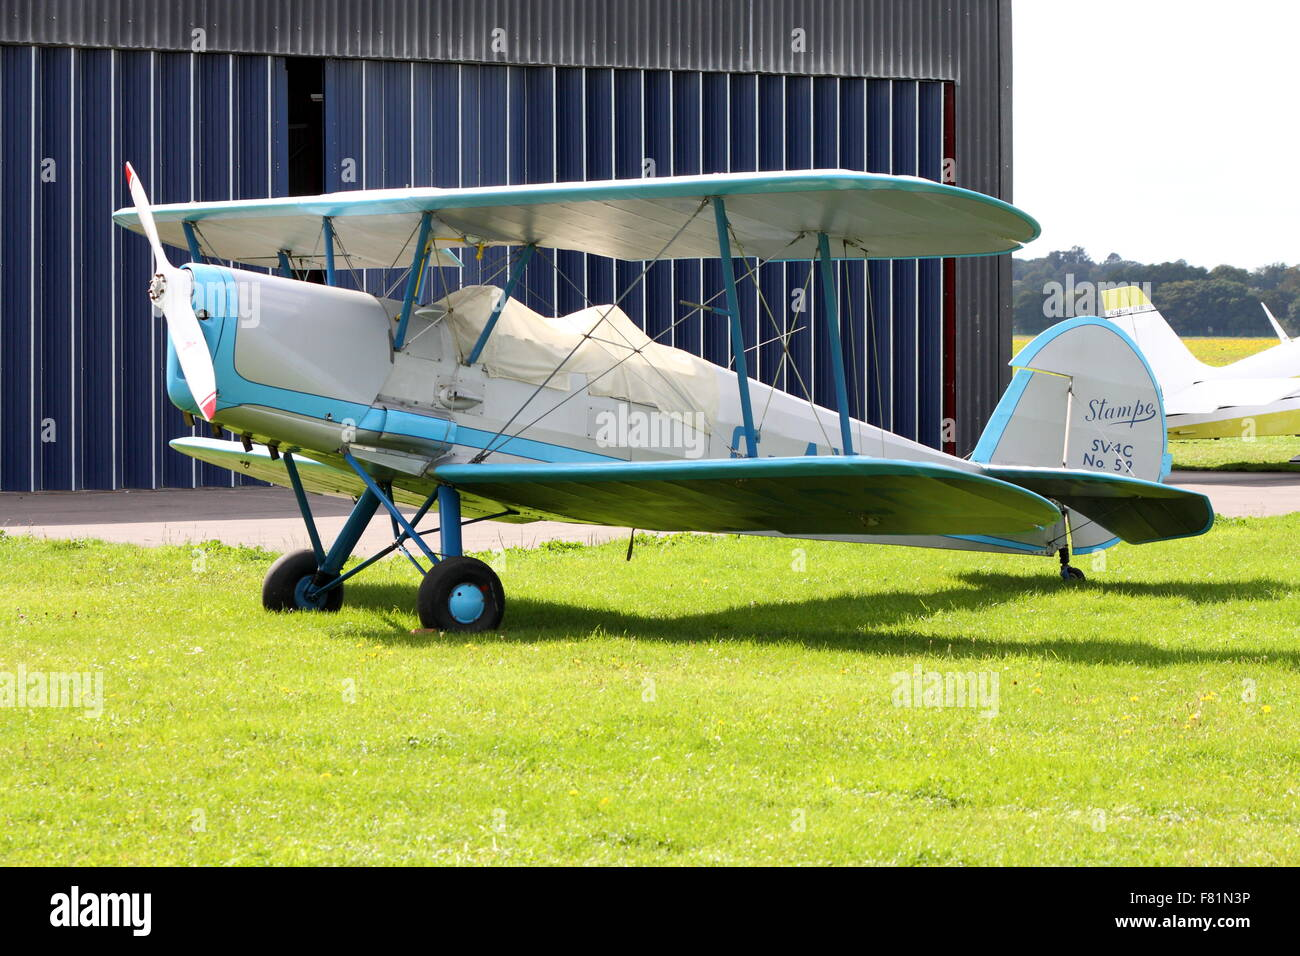 Stampe SV.4 at White Waltham Airfield - Stock Image